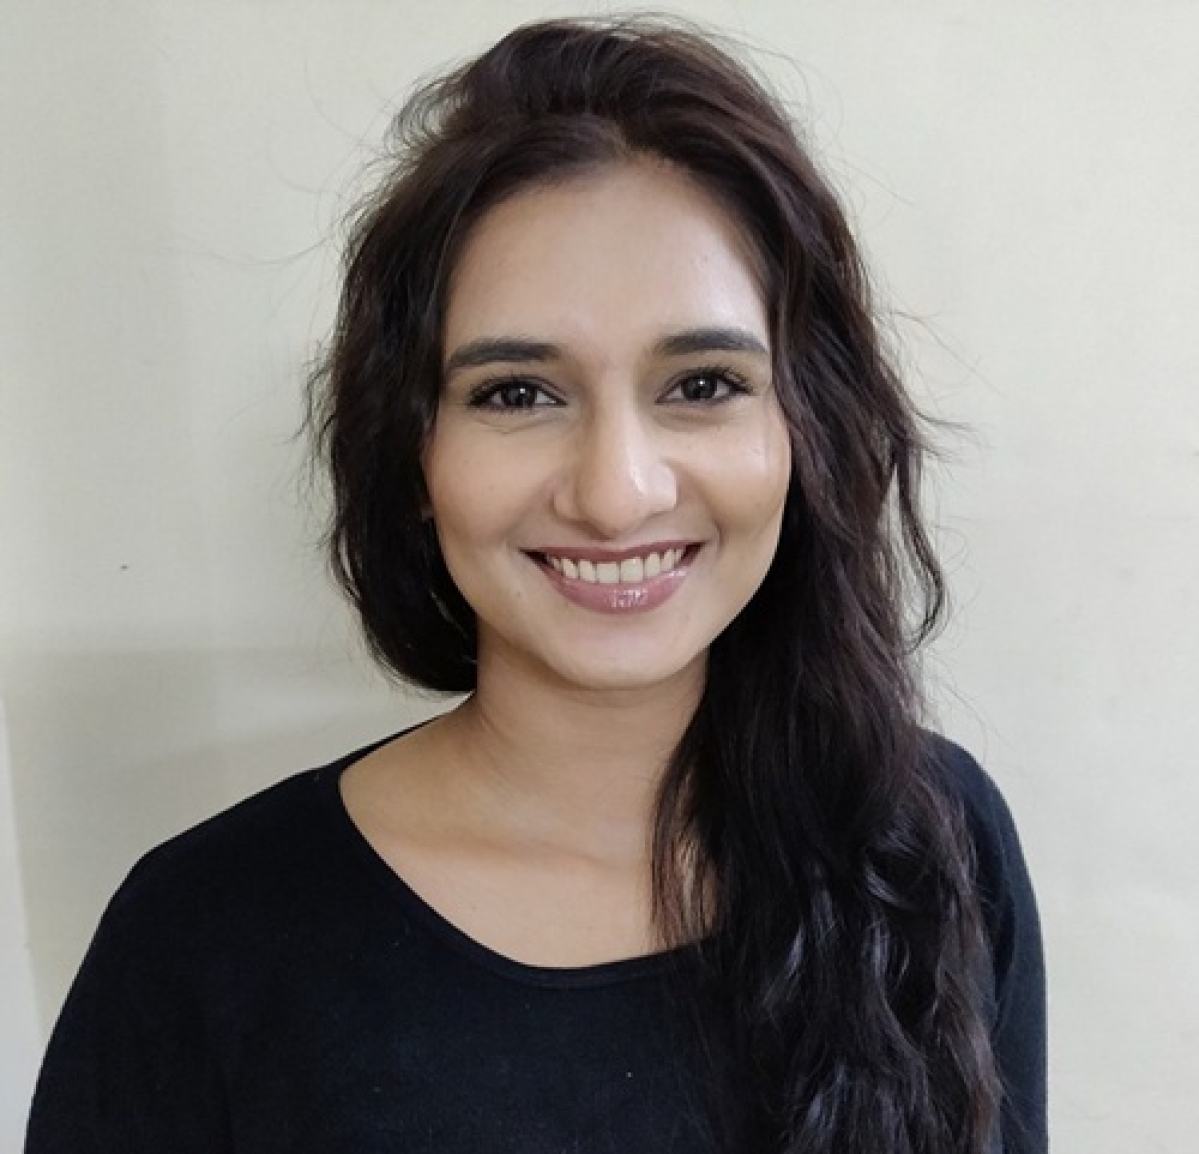 TEDxGateway 2018! Shahnaaz Khan: A student of conflict and peace